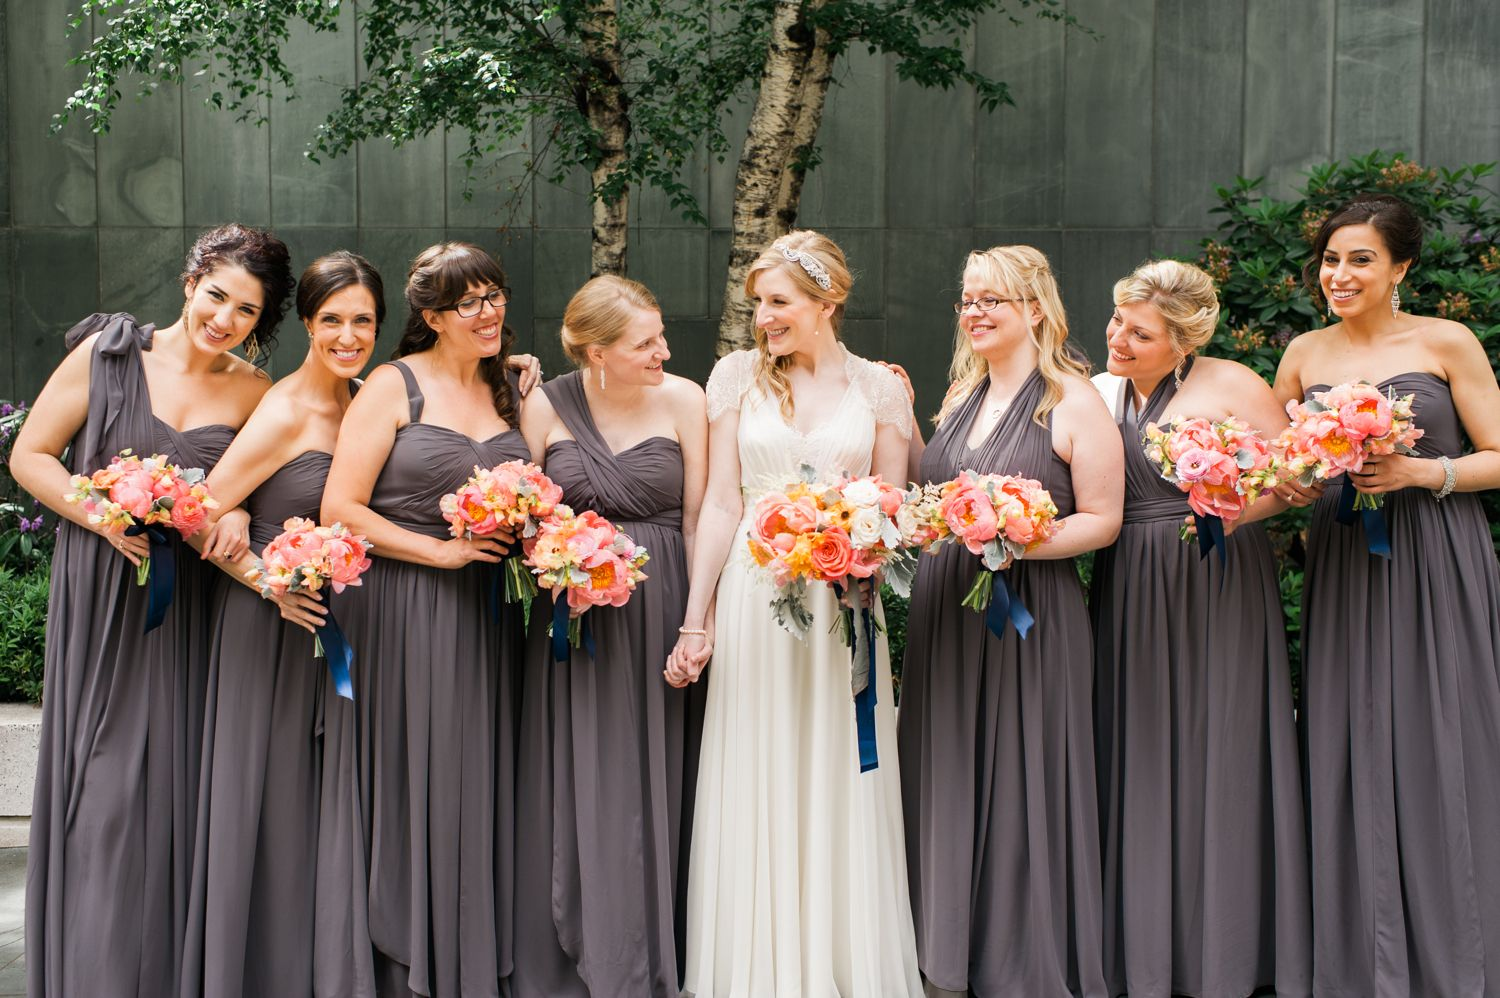 Jenny yoo aidan dresses in charcoal real weddings bridesmaids jenny yoo collection bridal and bridesmaids dresses for the simple bride ombrellifo Choice Image